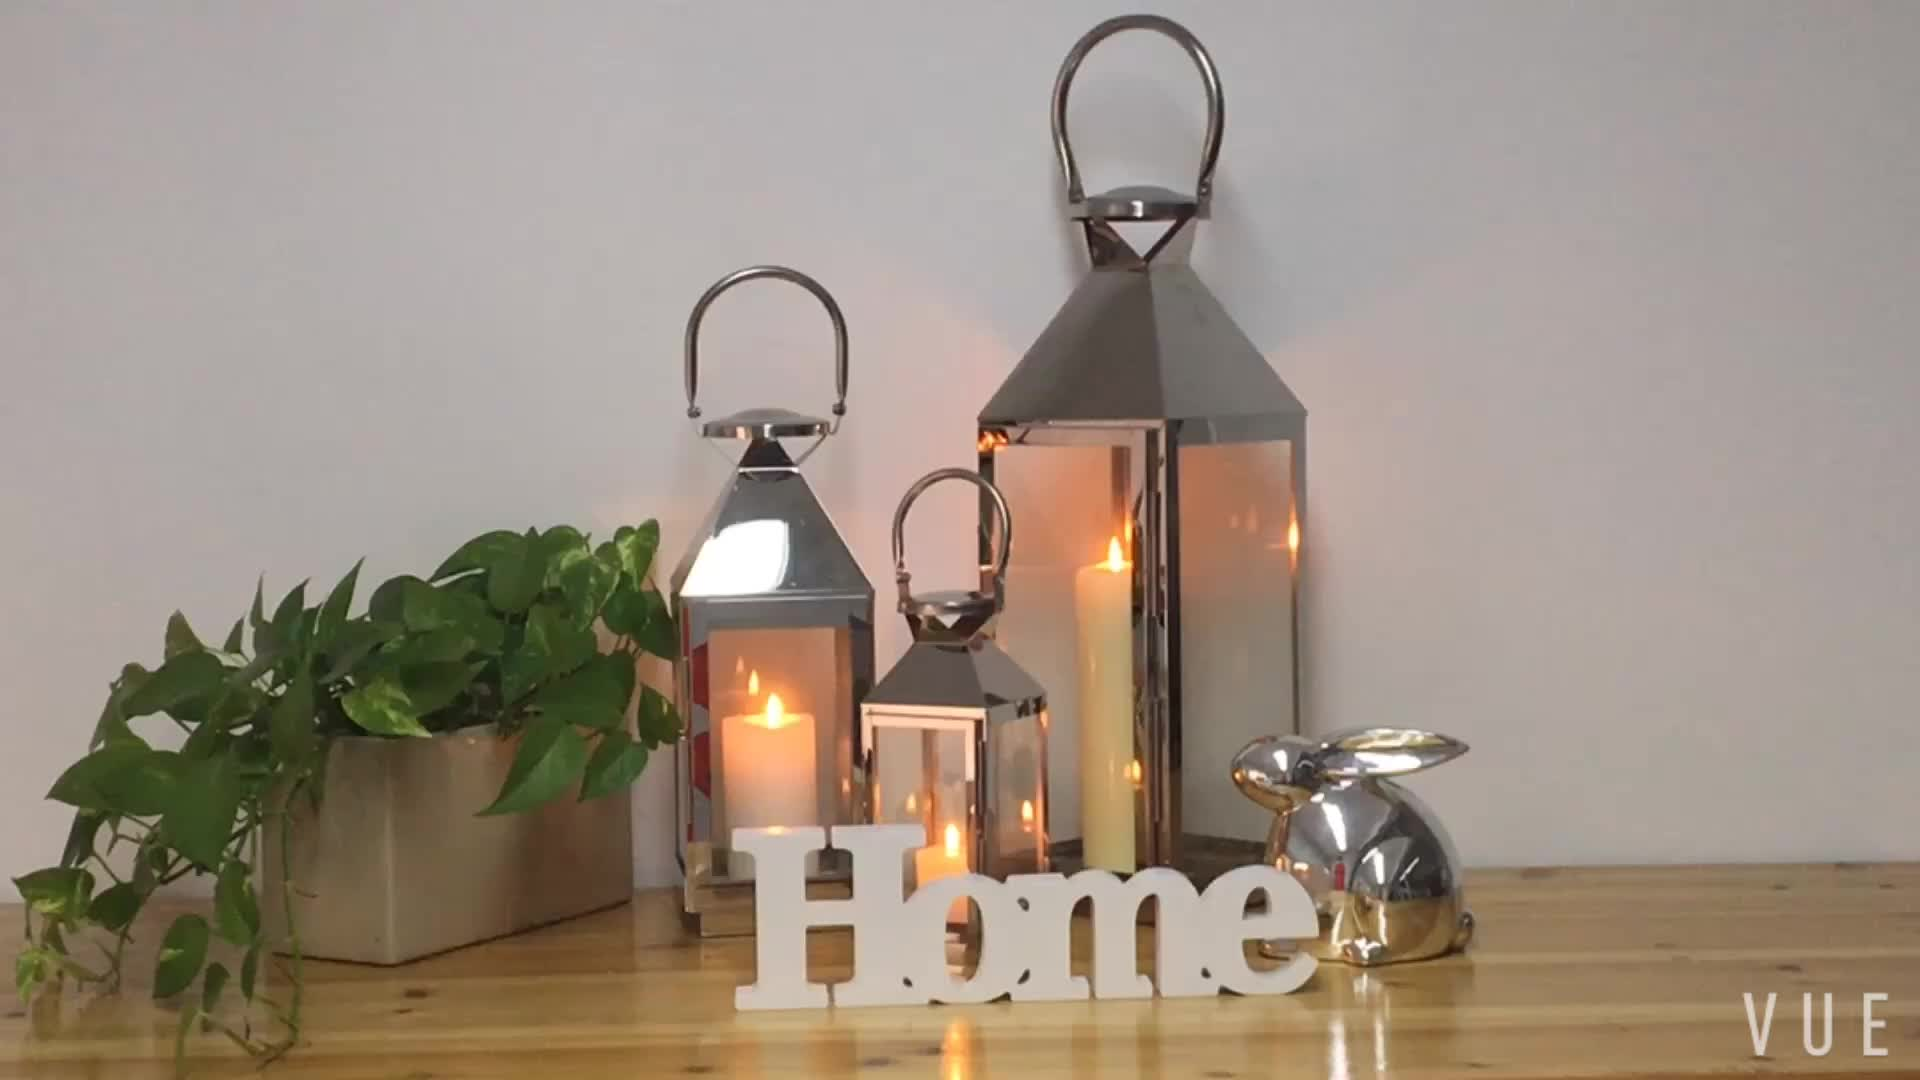 Outdoor popular hurricane and garden decoration stainless steel candle lantern